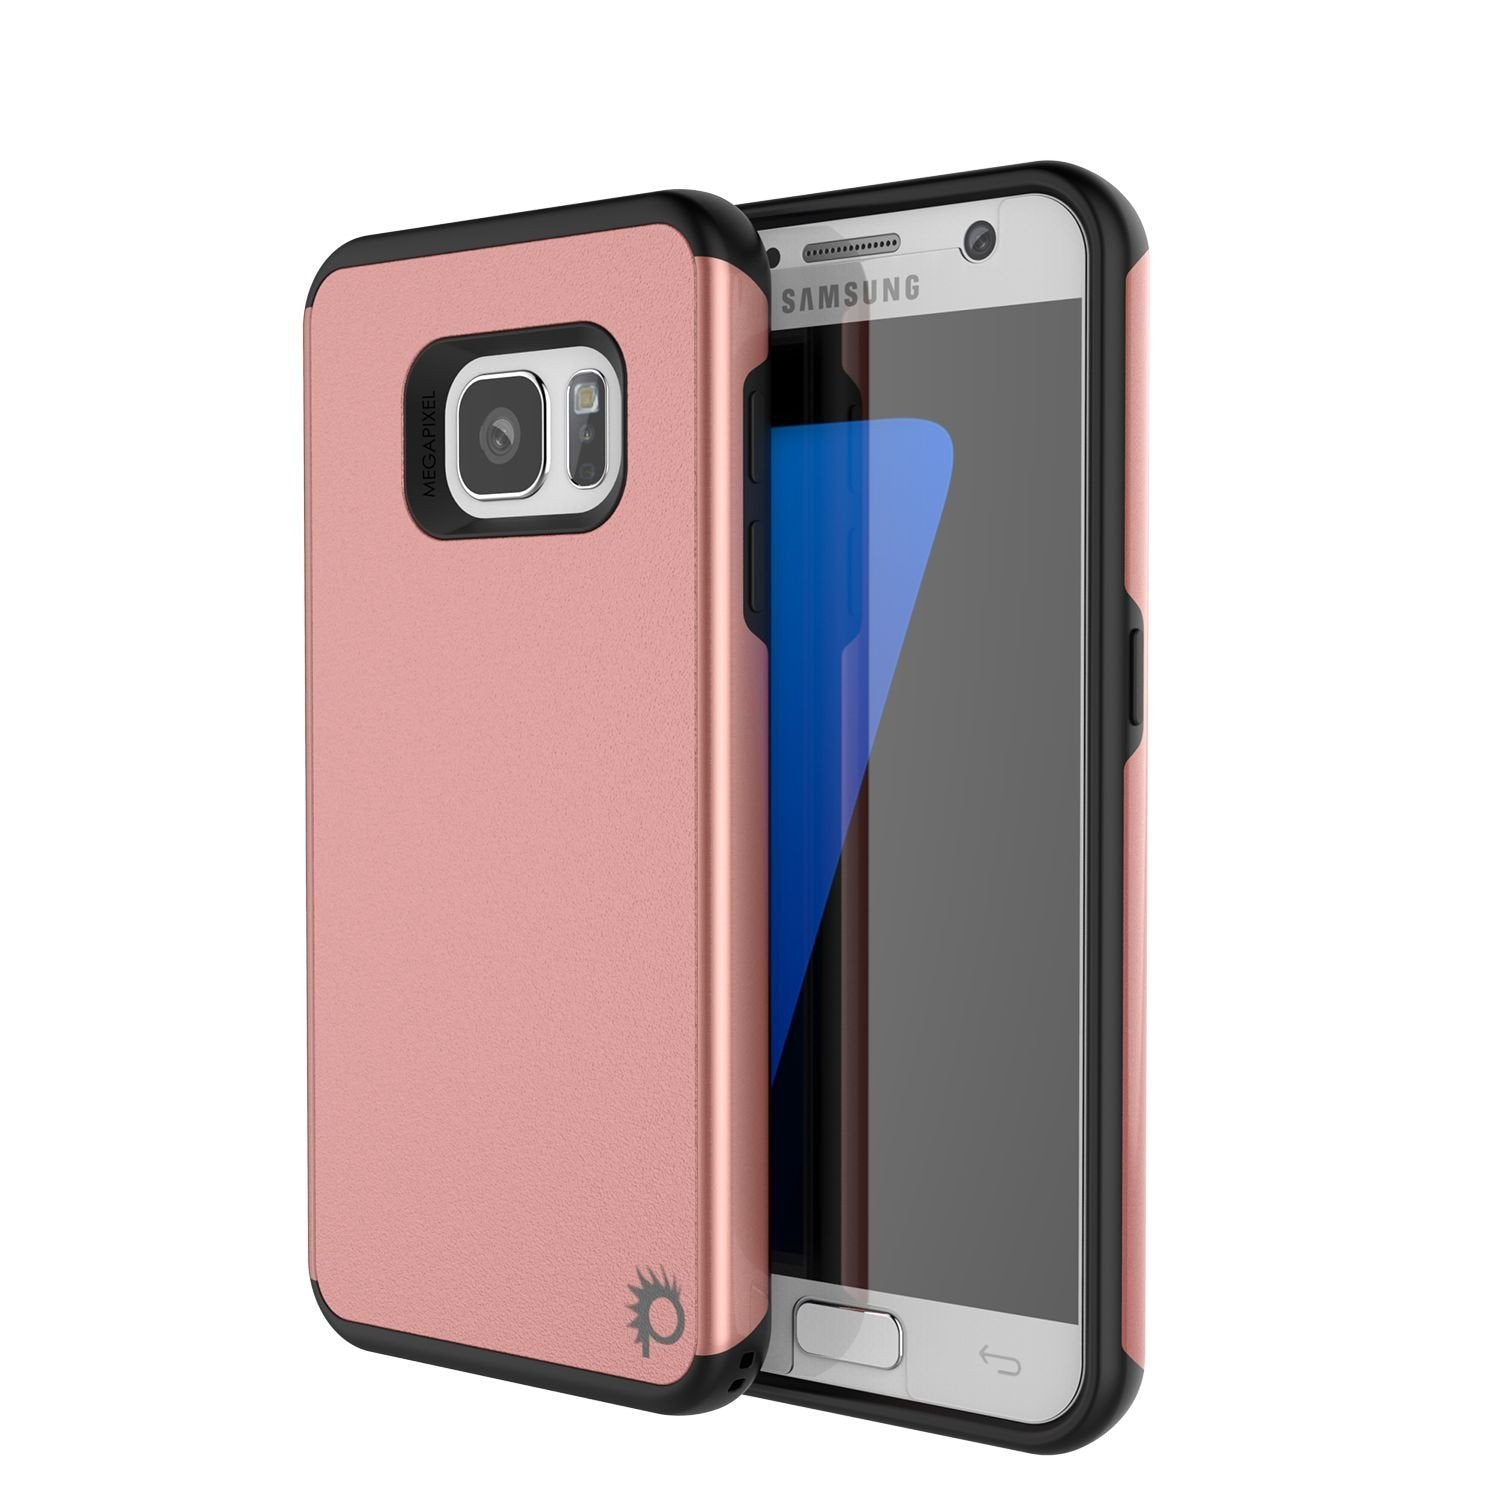 Galaxy s7 Case PunkCase Galactic Rose Gold Series Slim Armor Soft Cover Case w/ Tempered Glass - PunkCase NZ